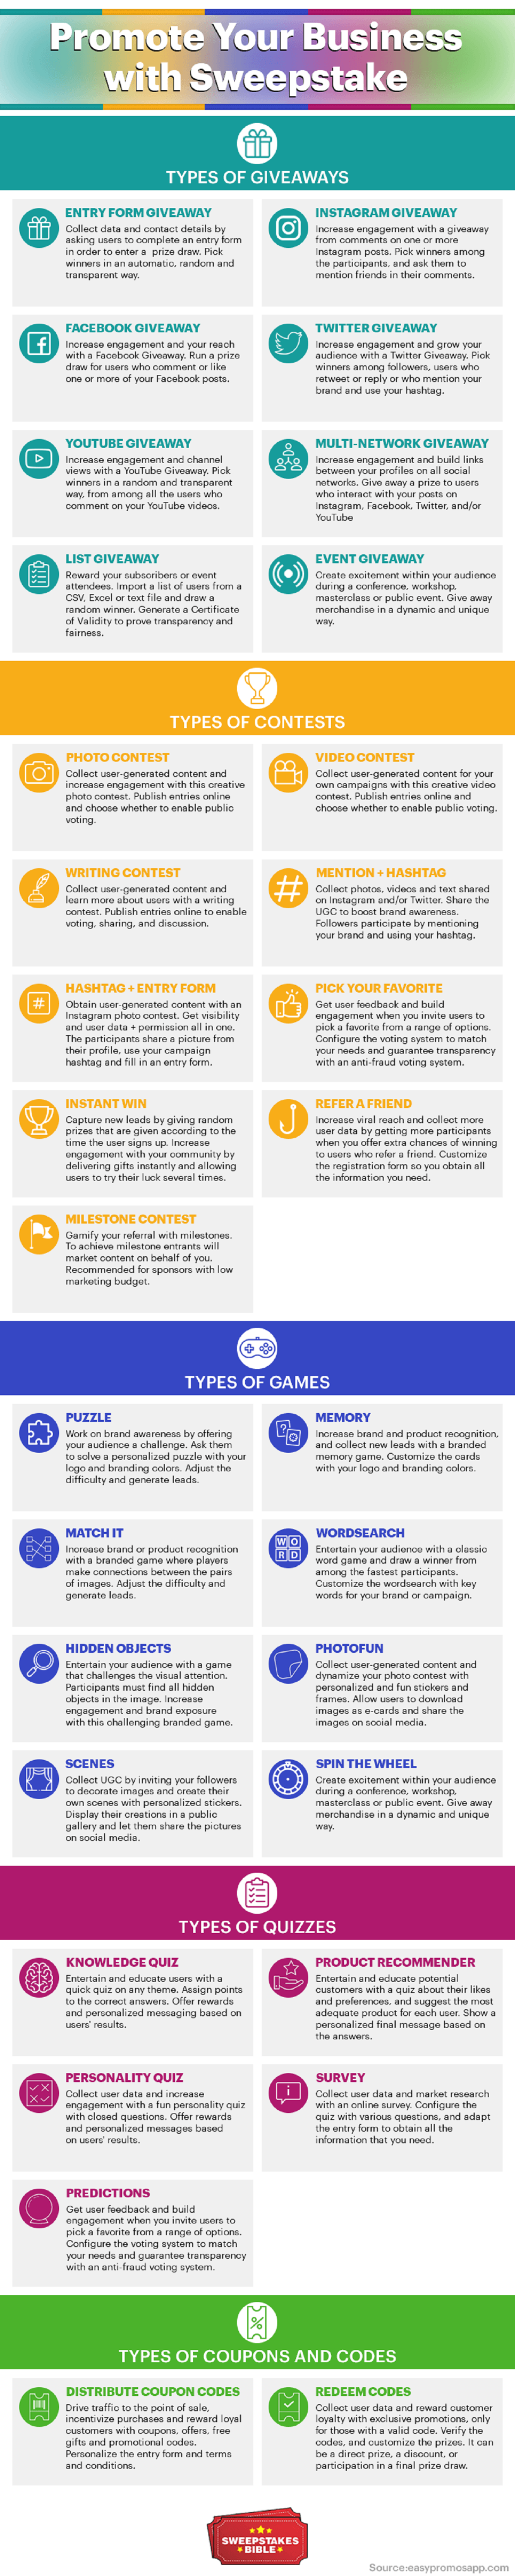 Types of Giveaways Every Sponsor Should Know #infographic